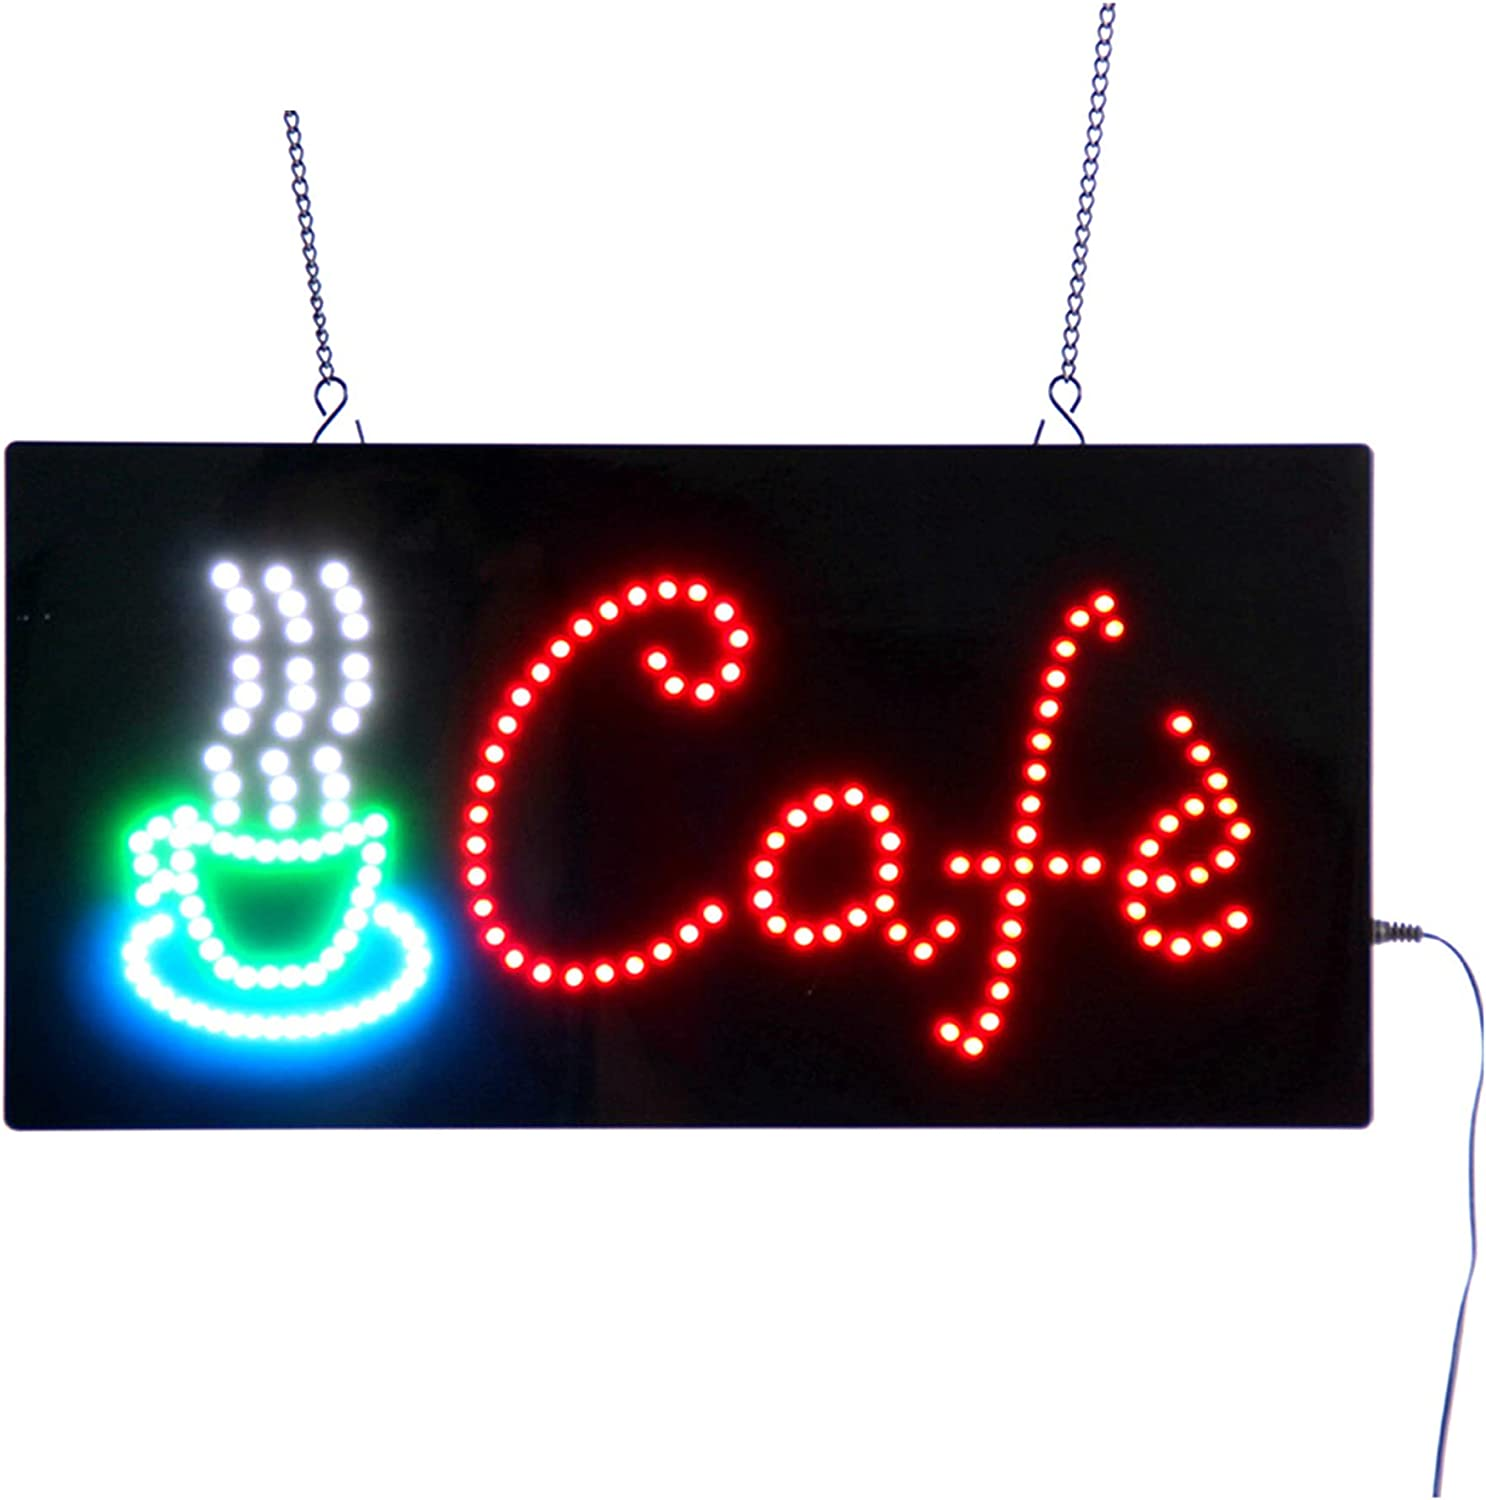 Pipigirl LED Cafe Sign Electronic Neon Lig Light Up It is very popular Import 19in9in